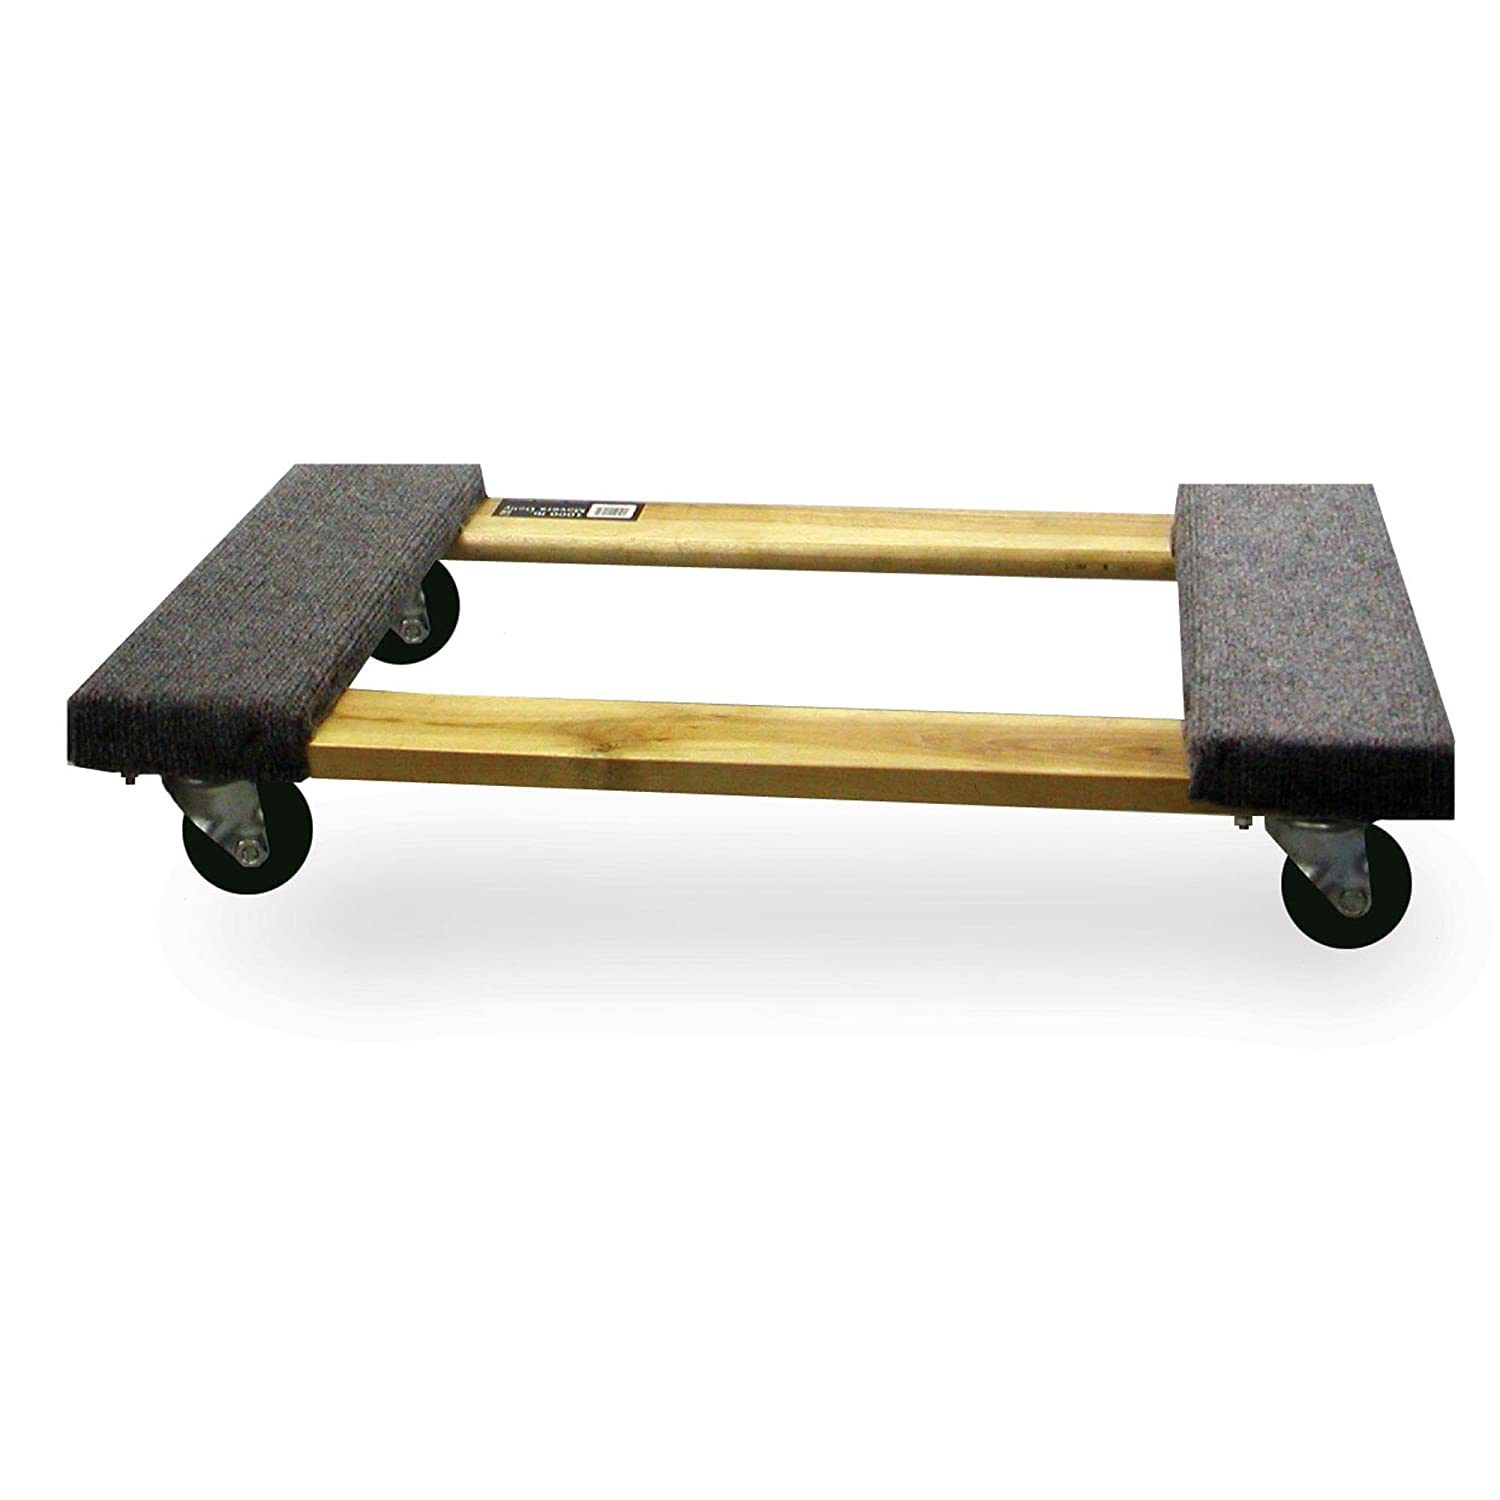 Amazon.com: Buffalo Tools HDFDOLLY 1000 Pound Furniture Dolly: Home  Improvement